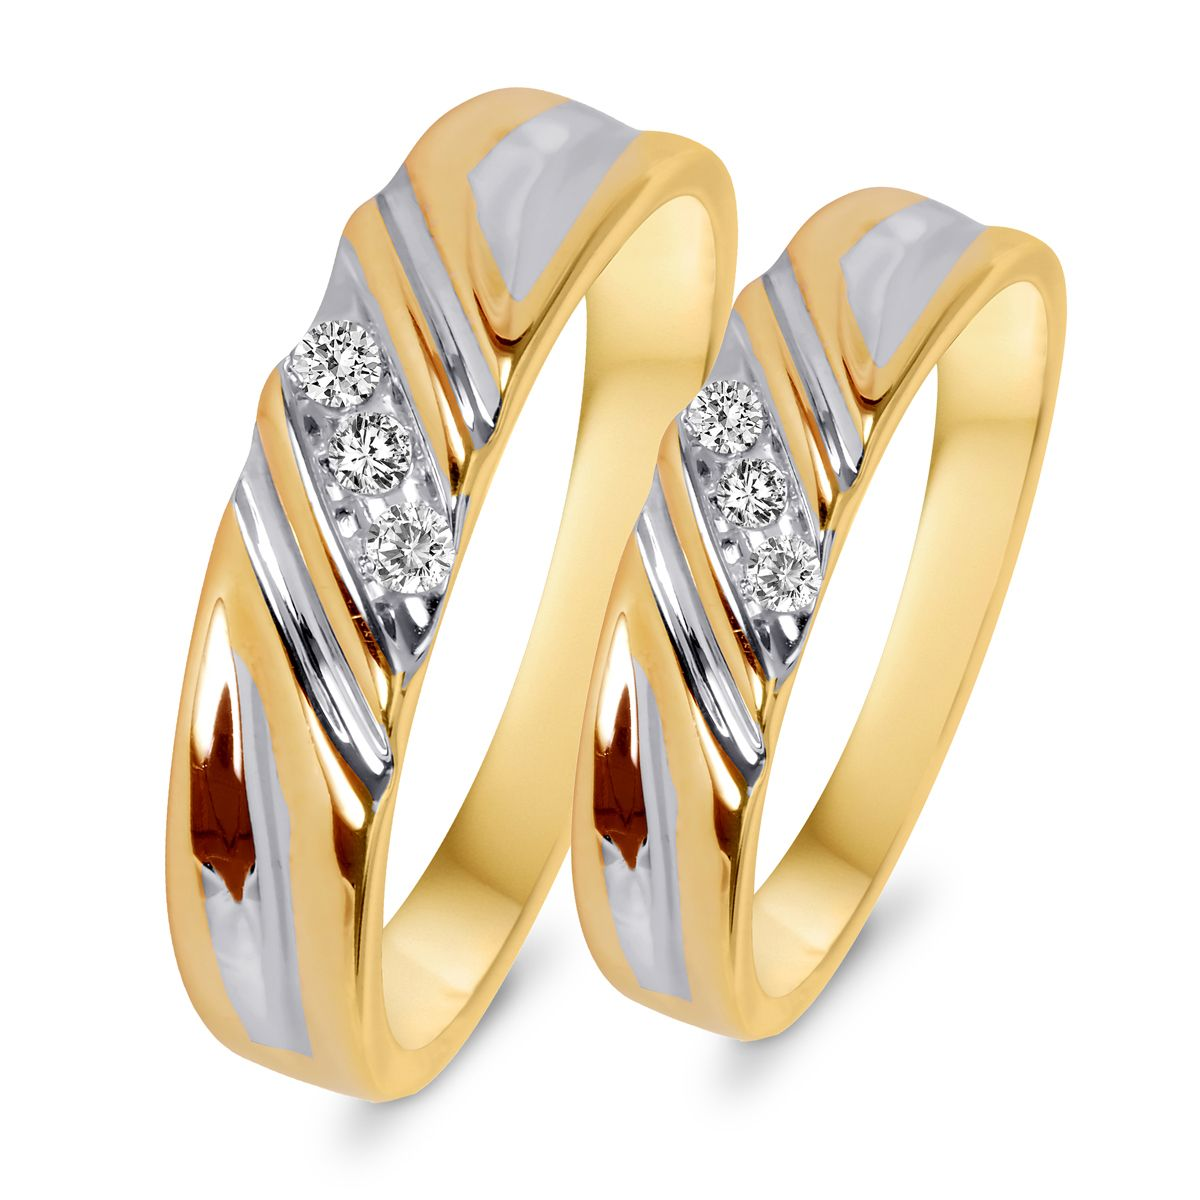 tw diamond his and hers wedding rings 10k rose gold - Wedding Ring Designs